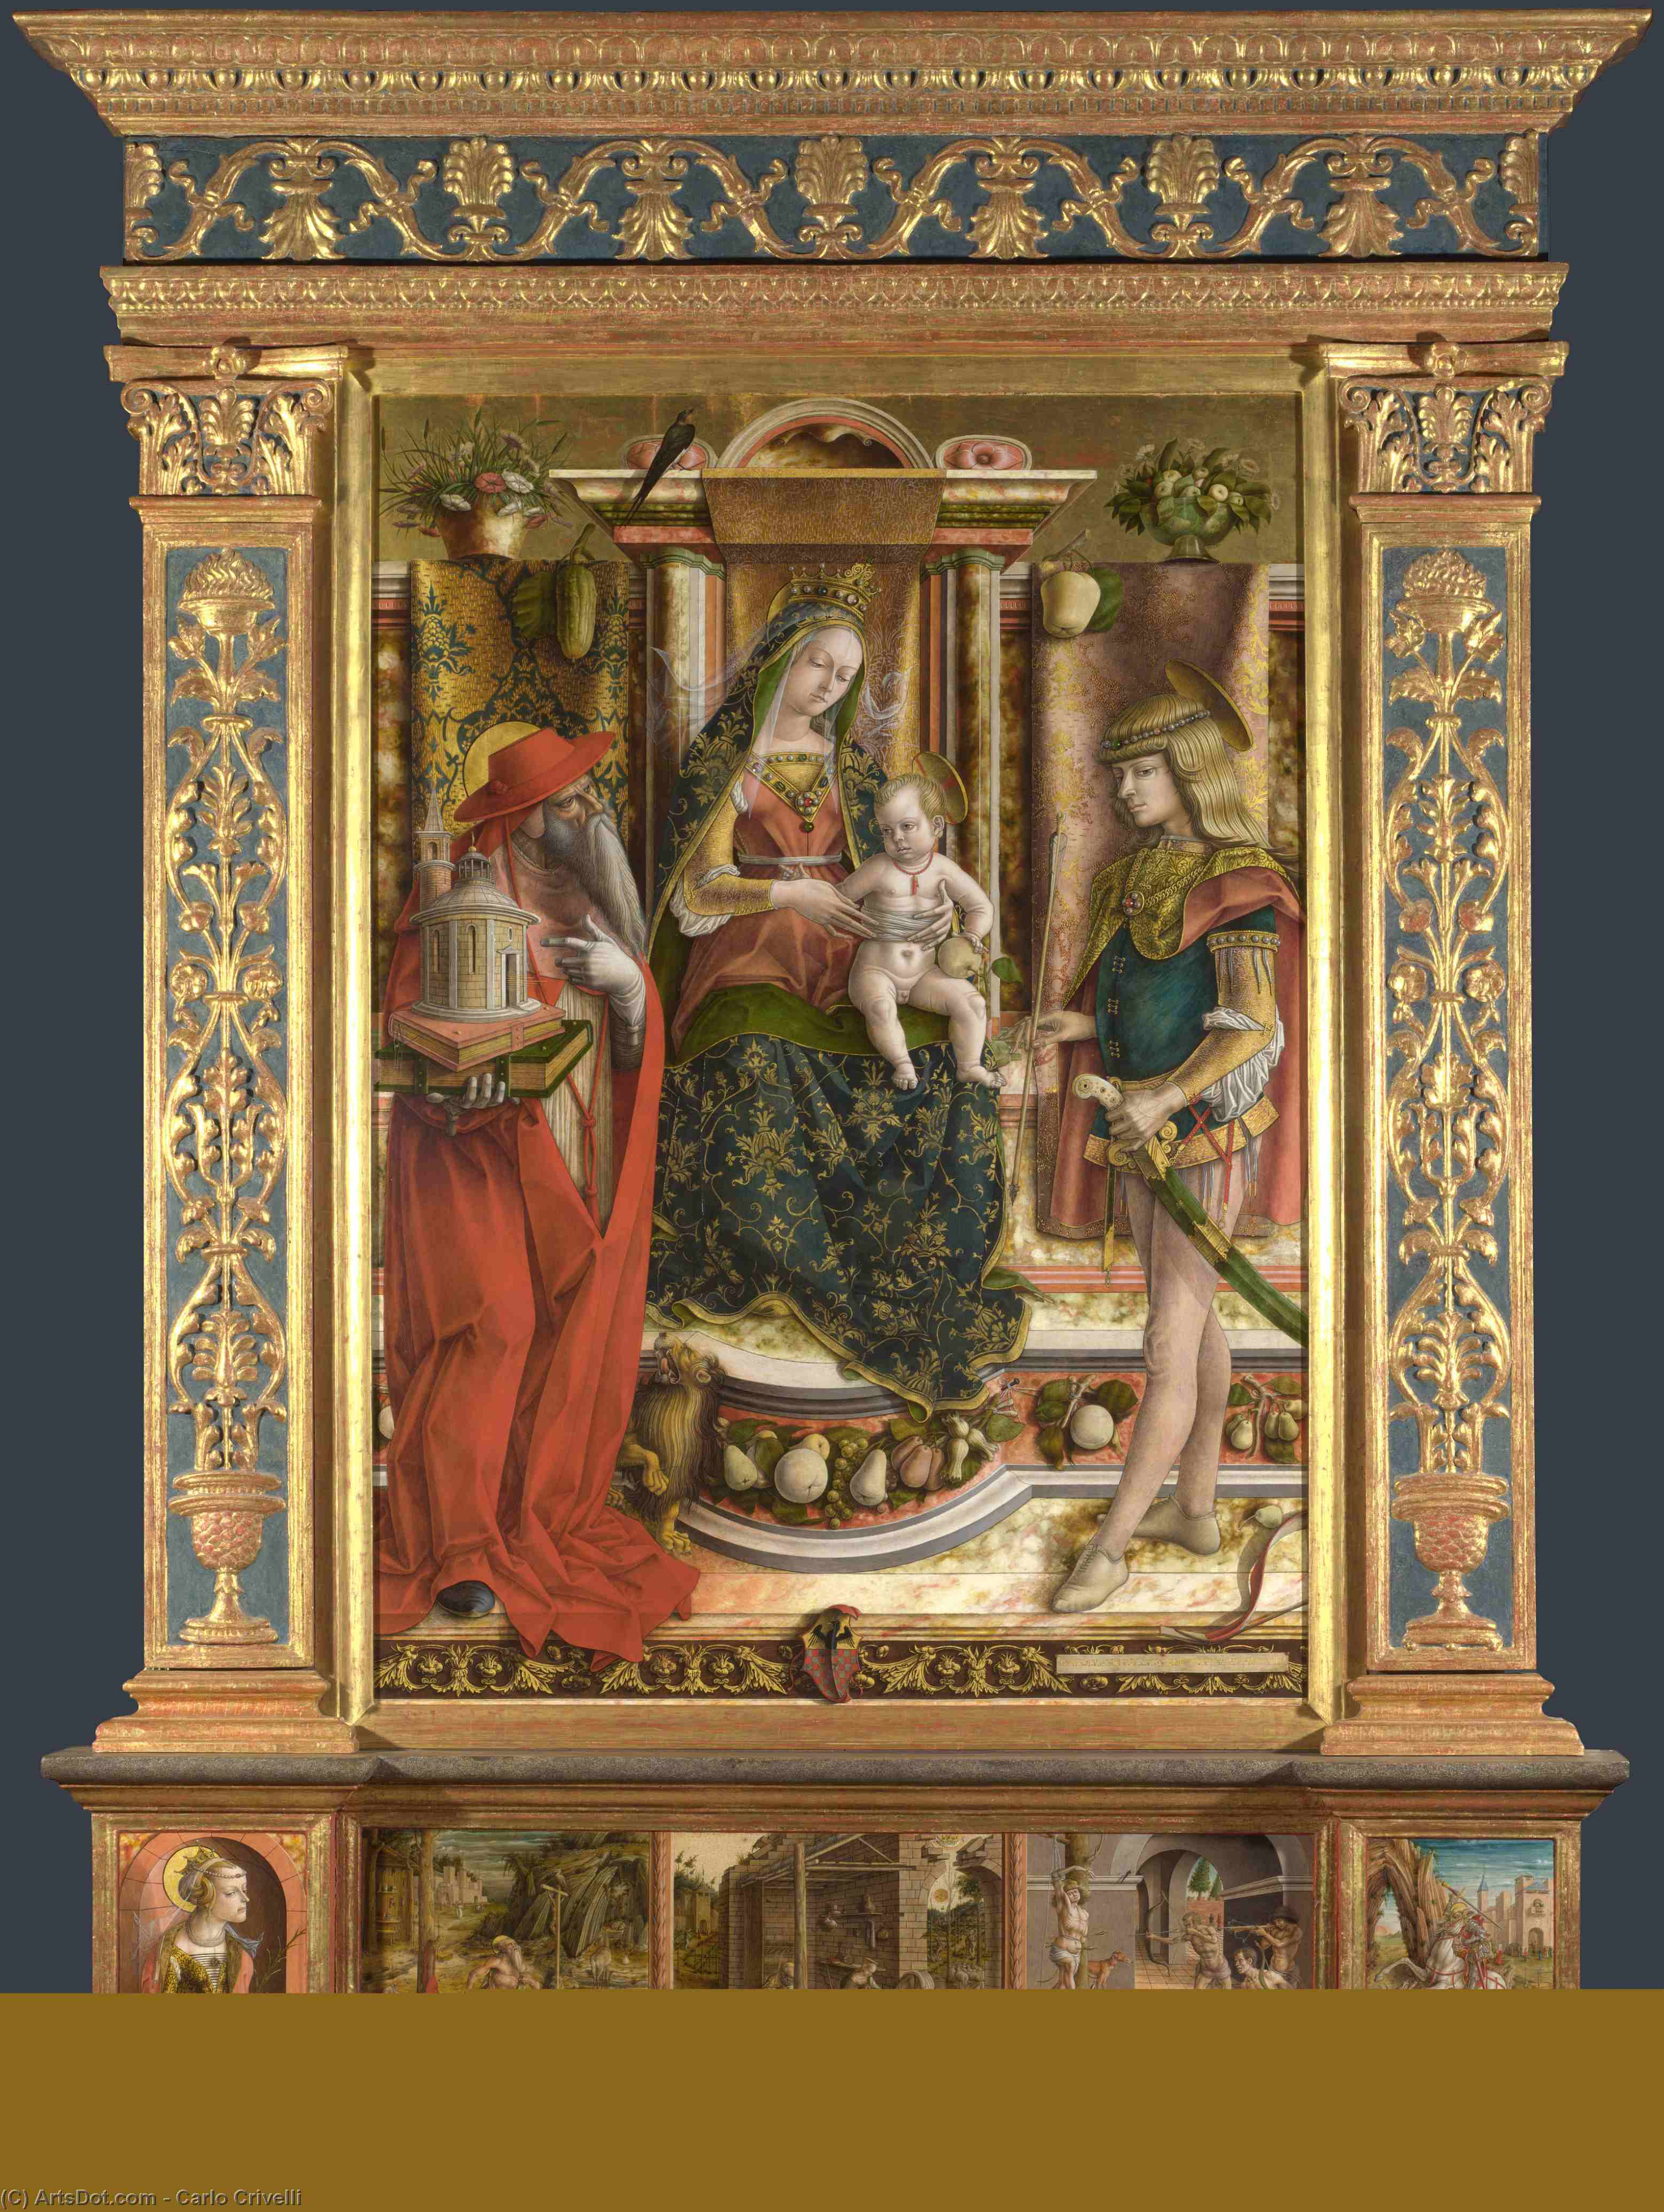 Wikioo.org - The Encyclopedia of Fine Arts - Painting, Artwork by Carlo Crivelli - Altarpiece from S. Francesco dei Zoccolanti, Matelica